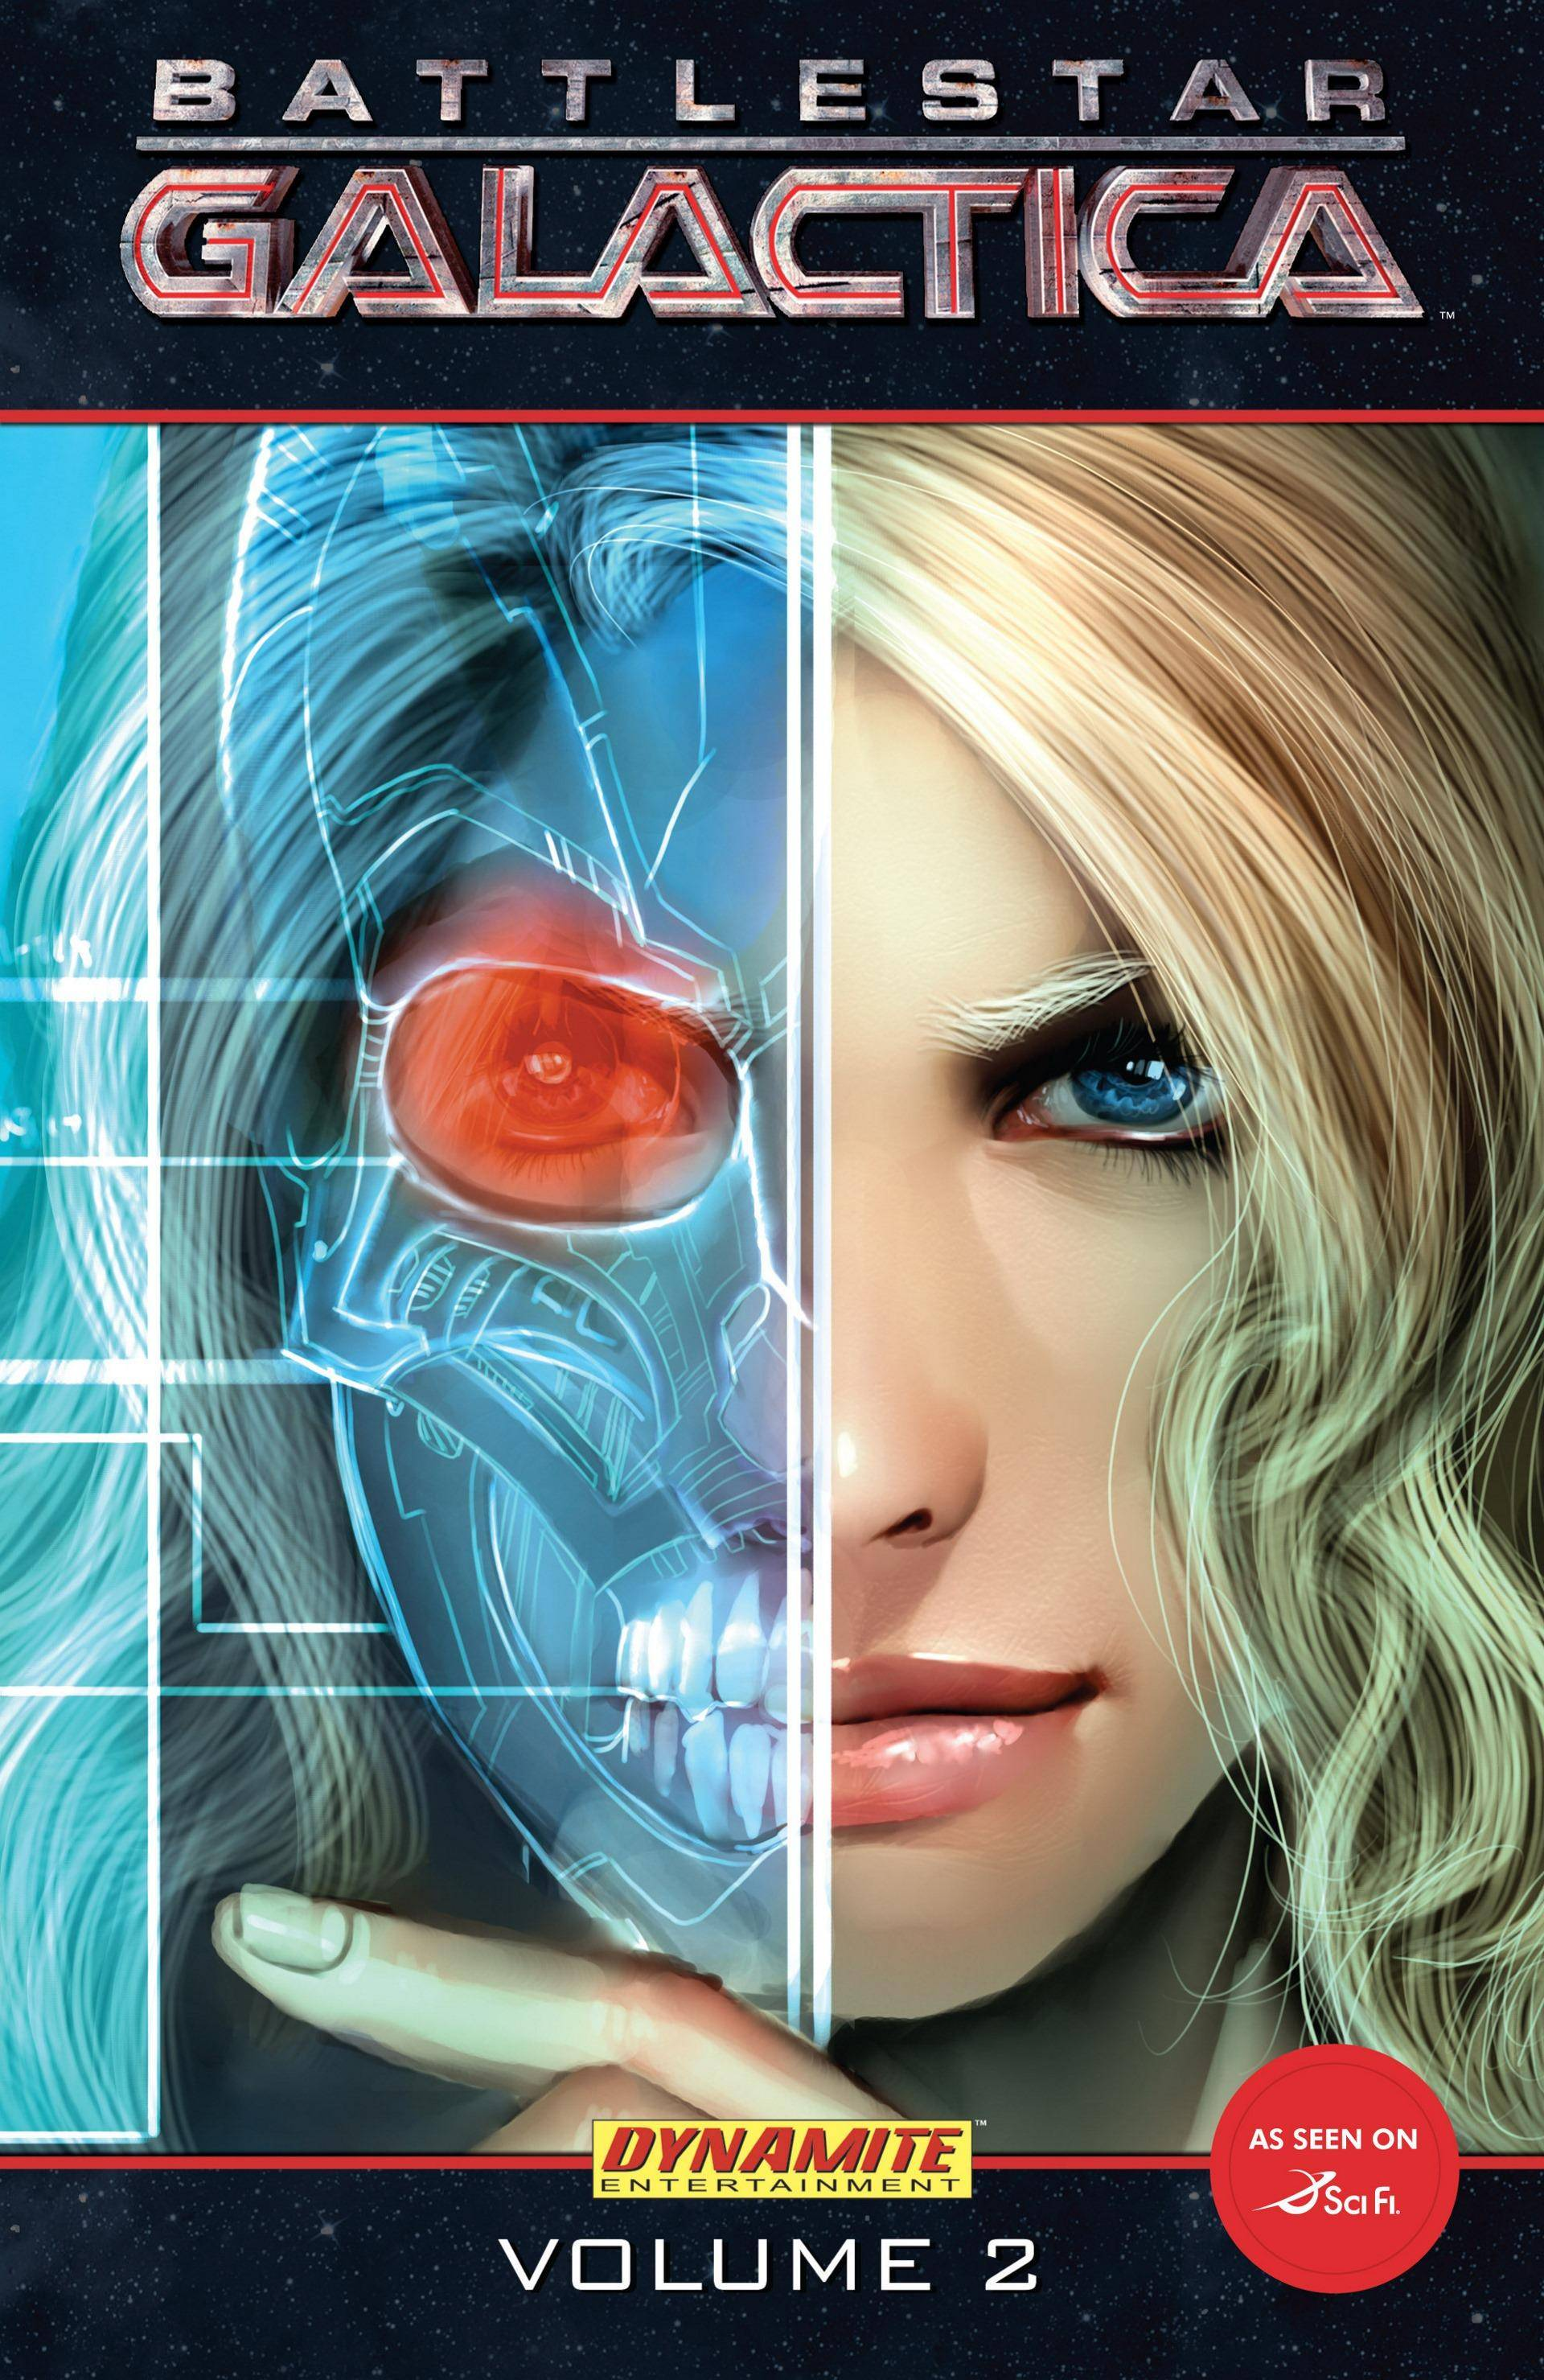 Battlestar Galactica Vol 2 TPB 2007 2 covers Digital